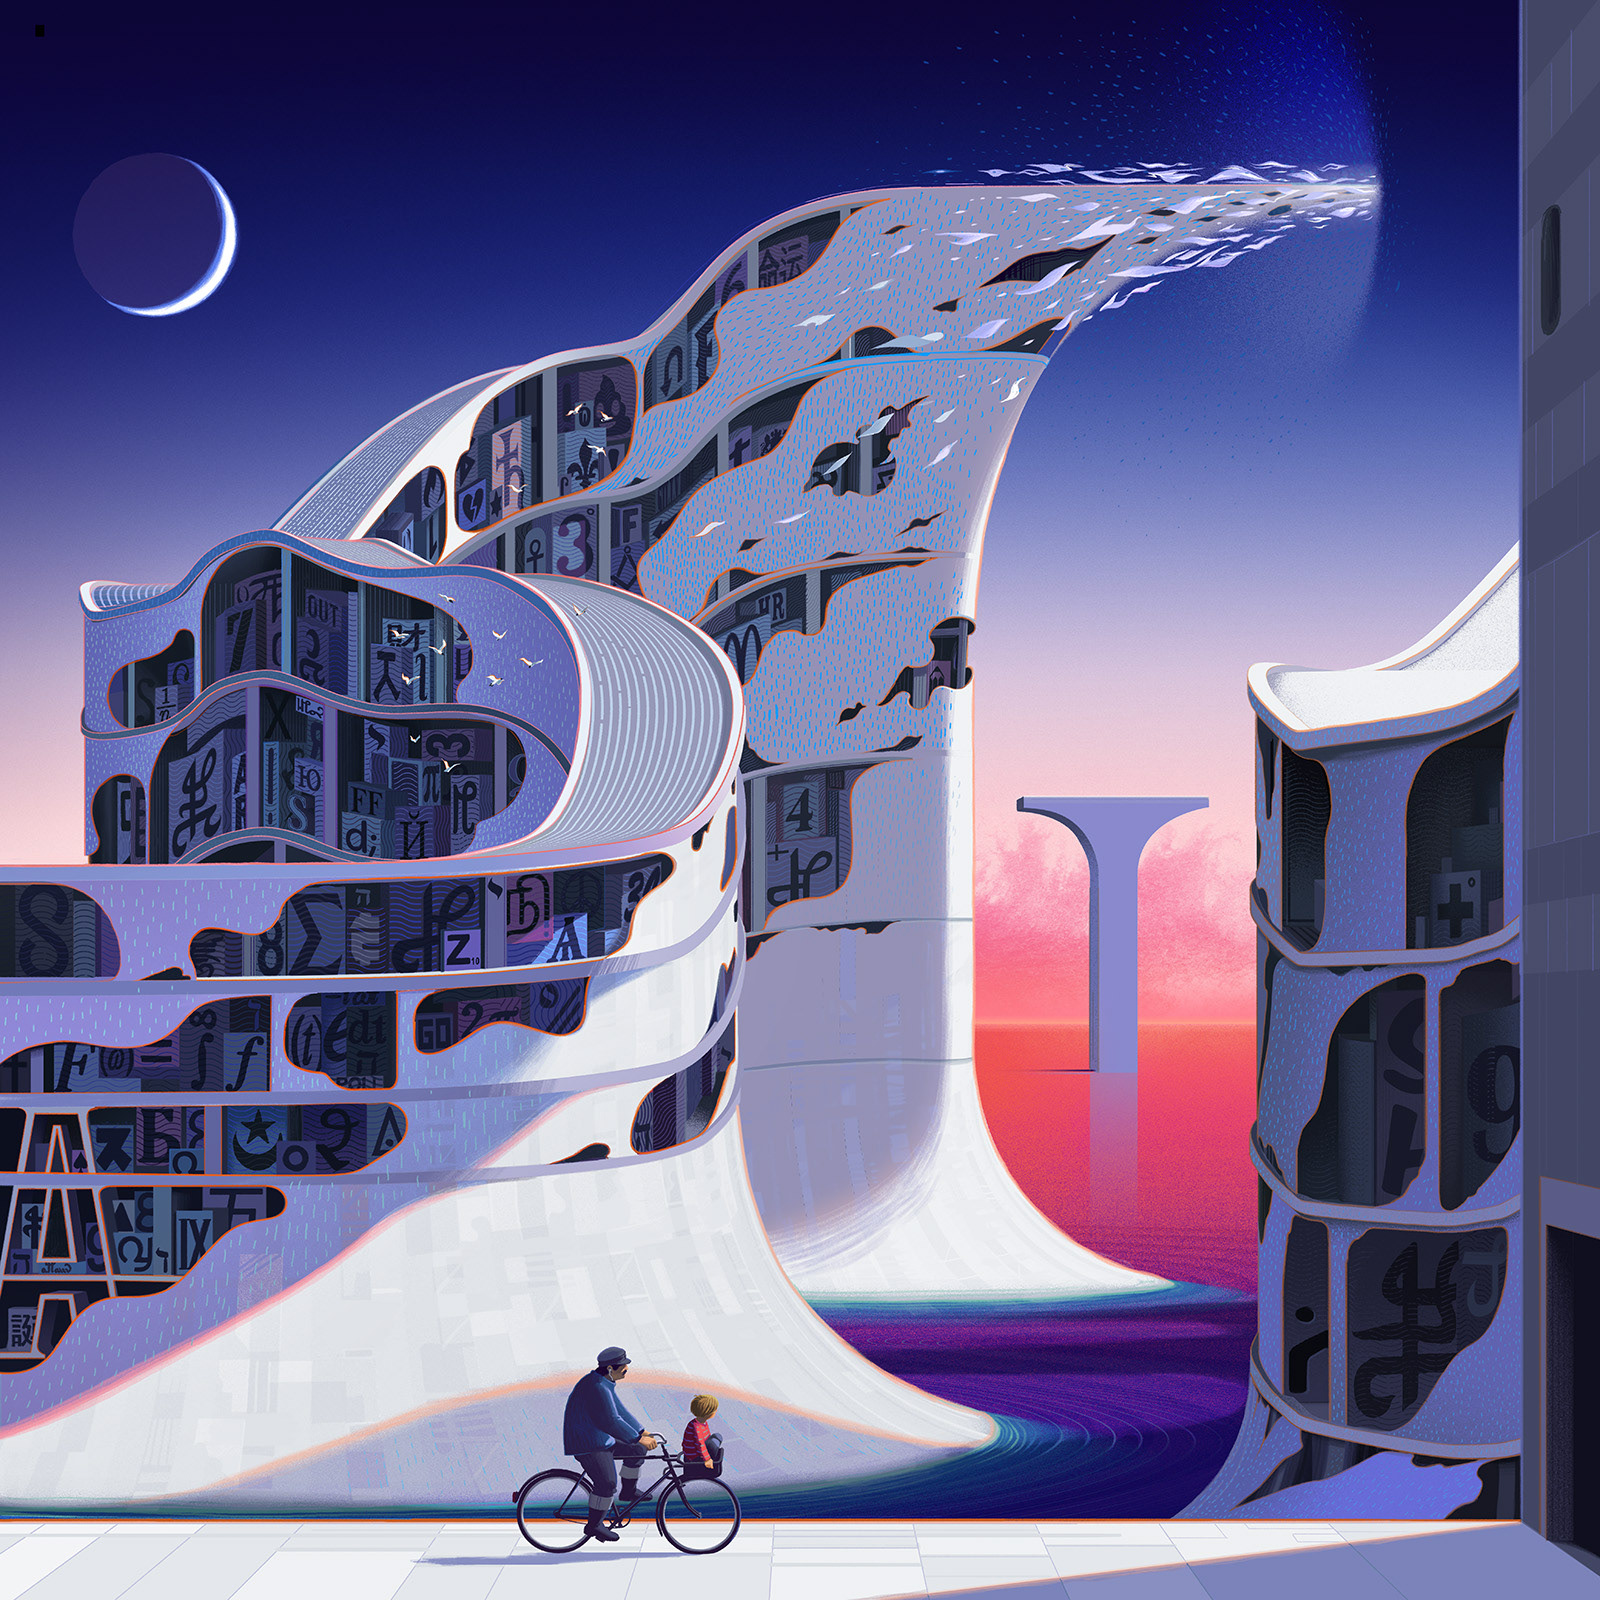 Dream States Illustration Series by Sam Chivers